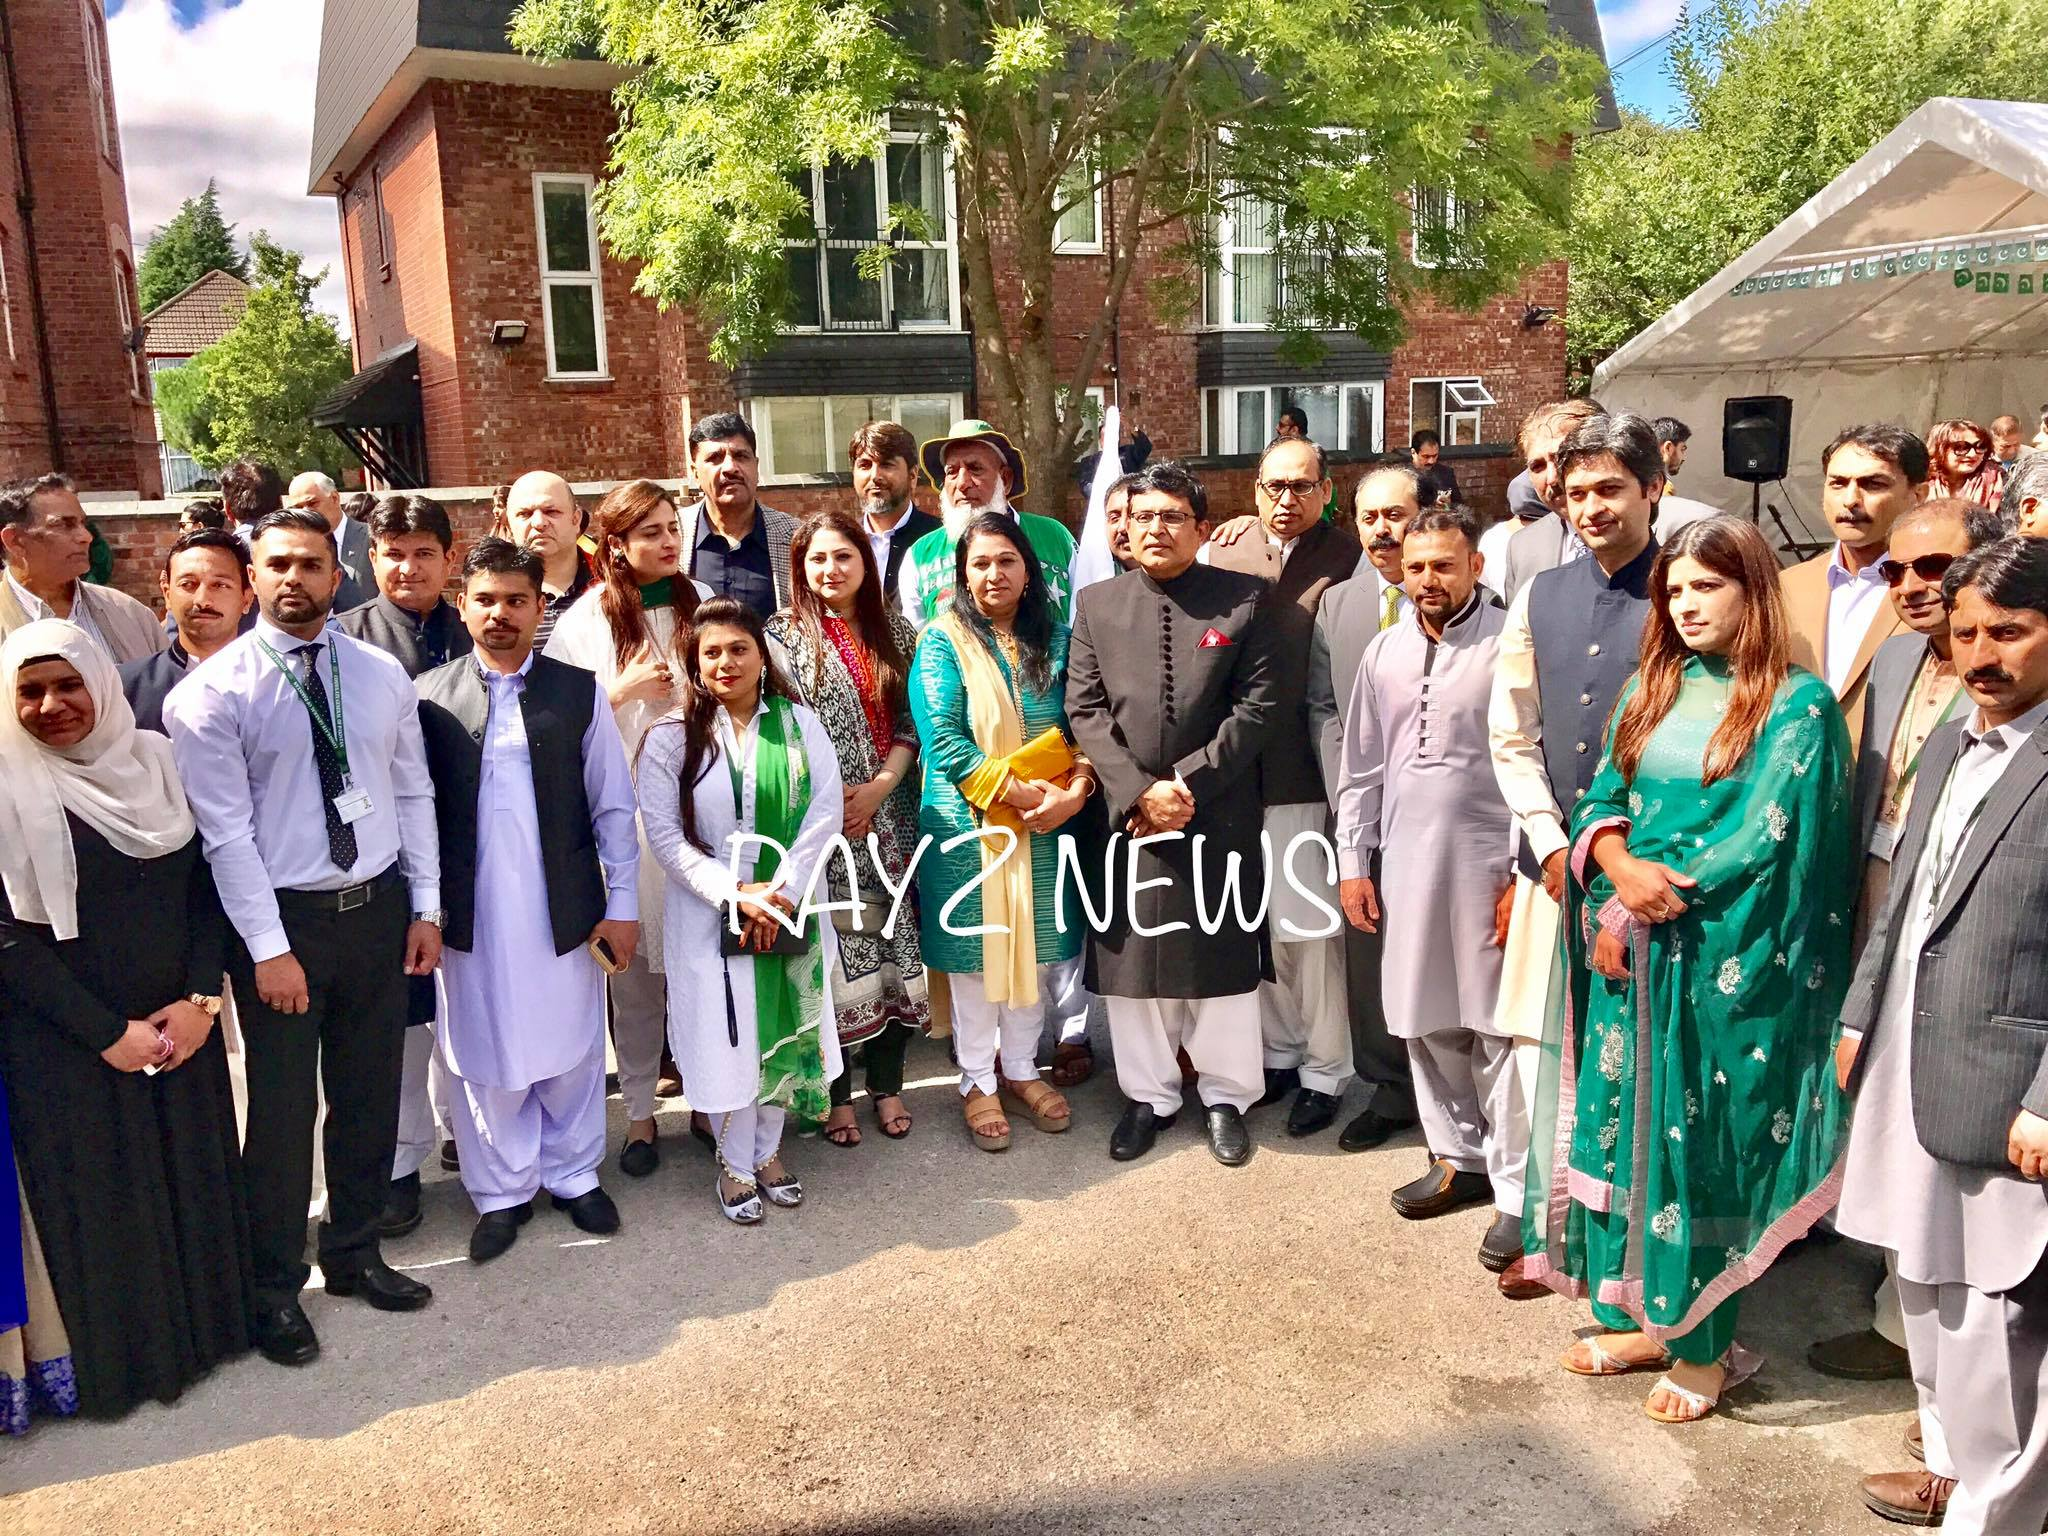 GMPA Organised 14th August celebration at Pakistani community centre in Manchester